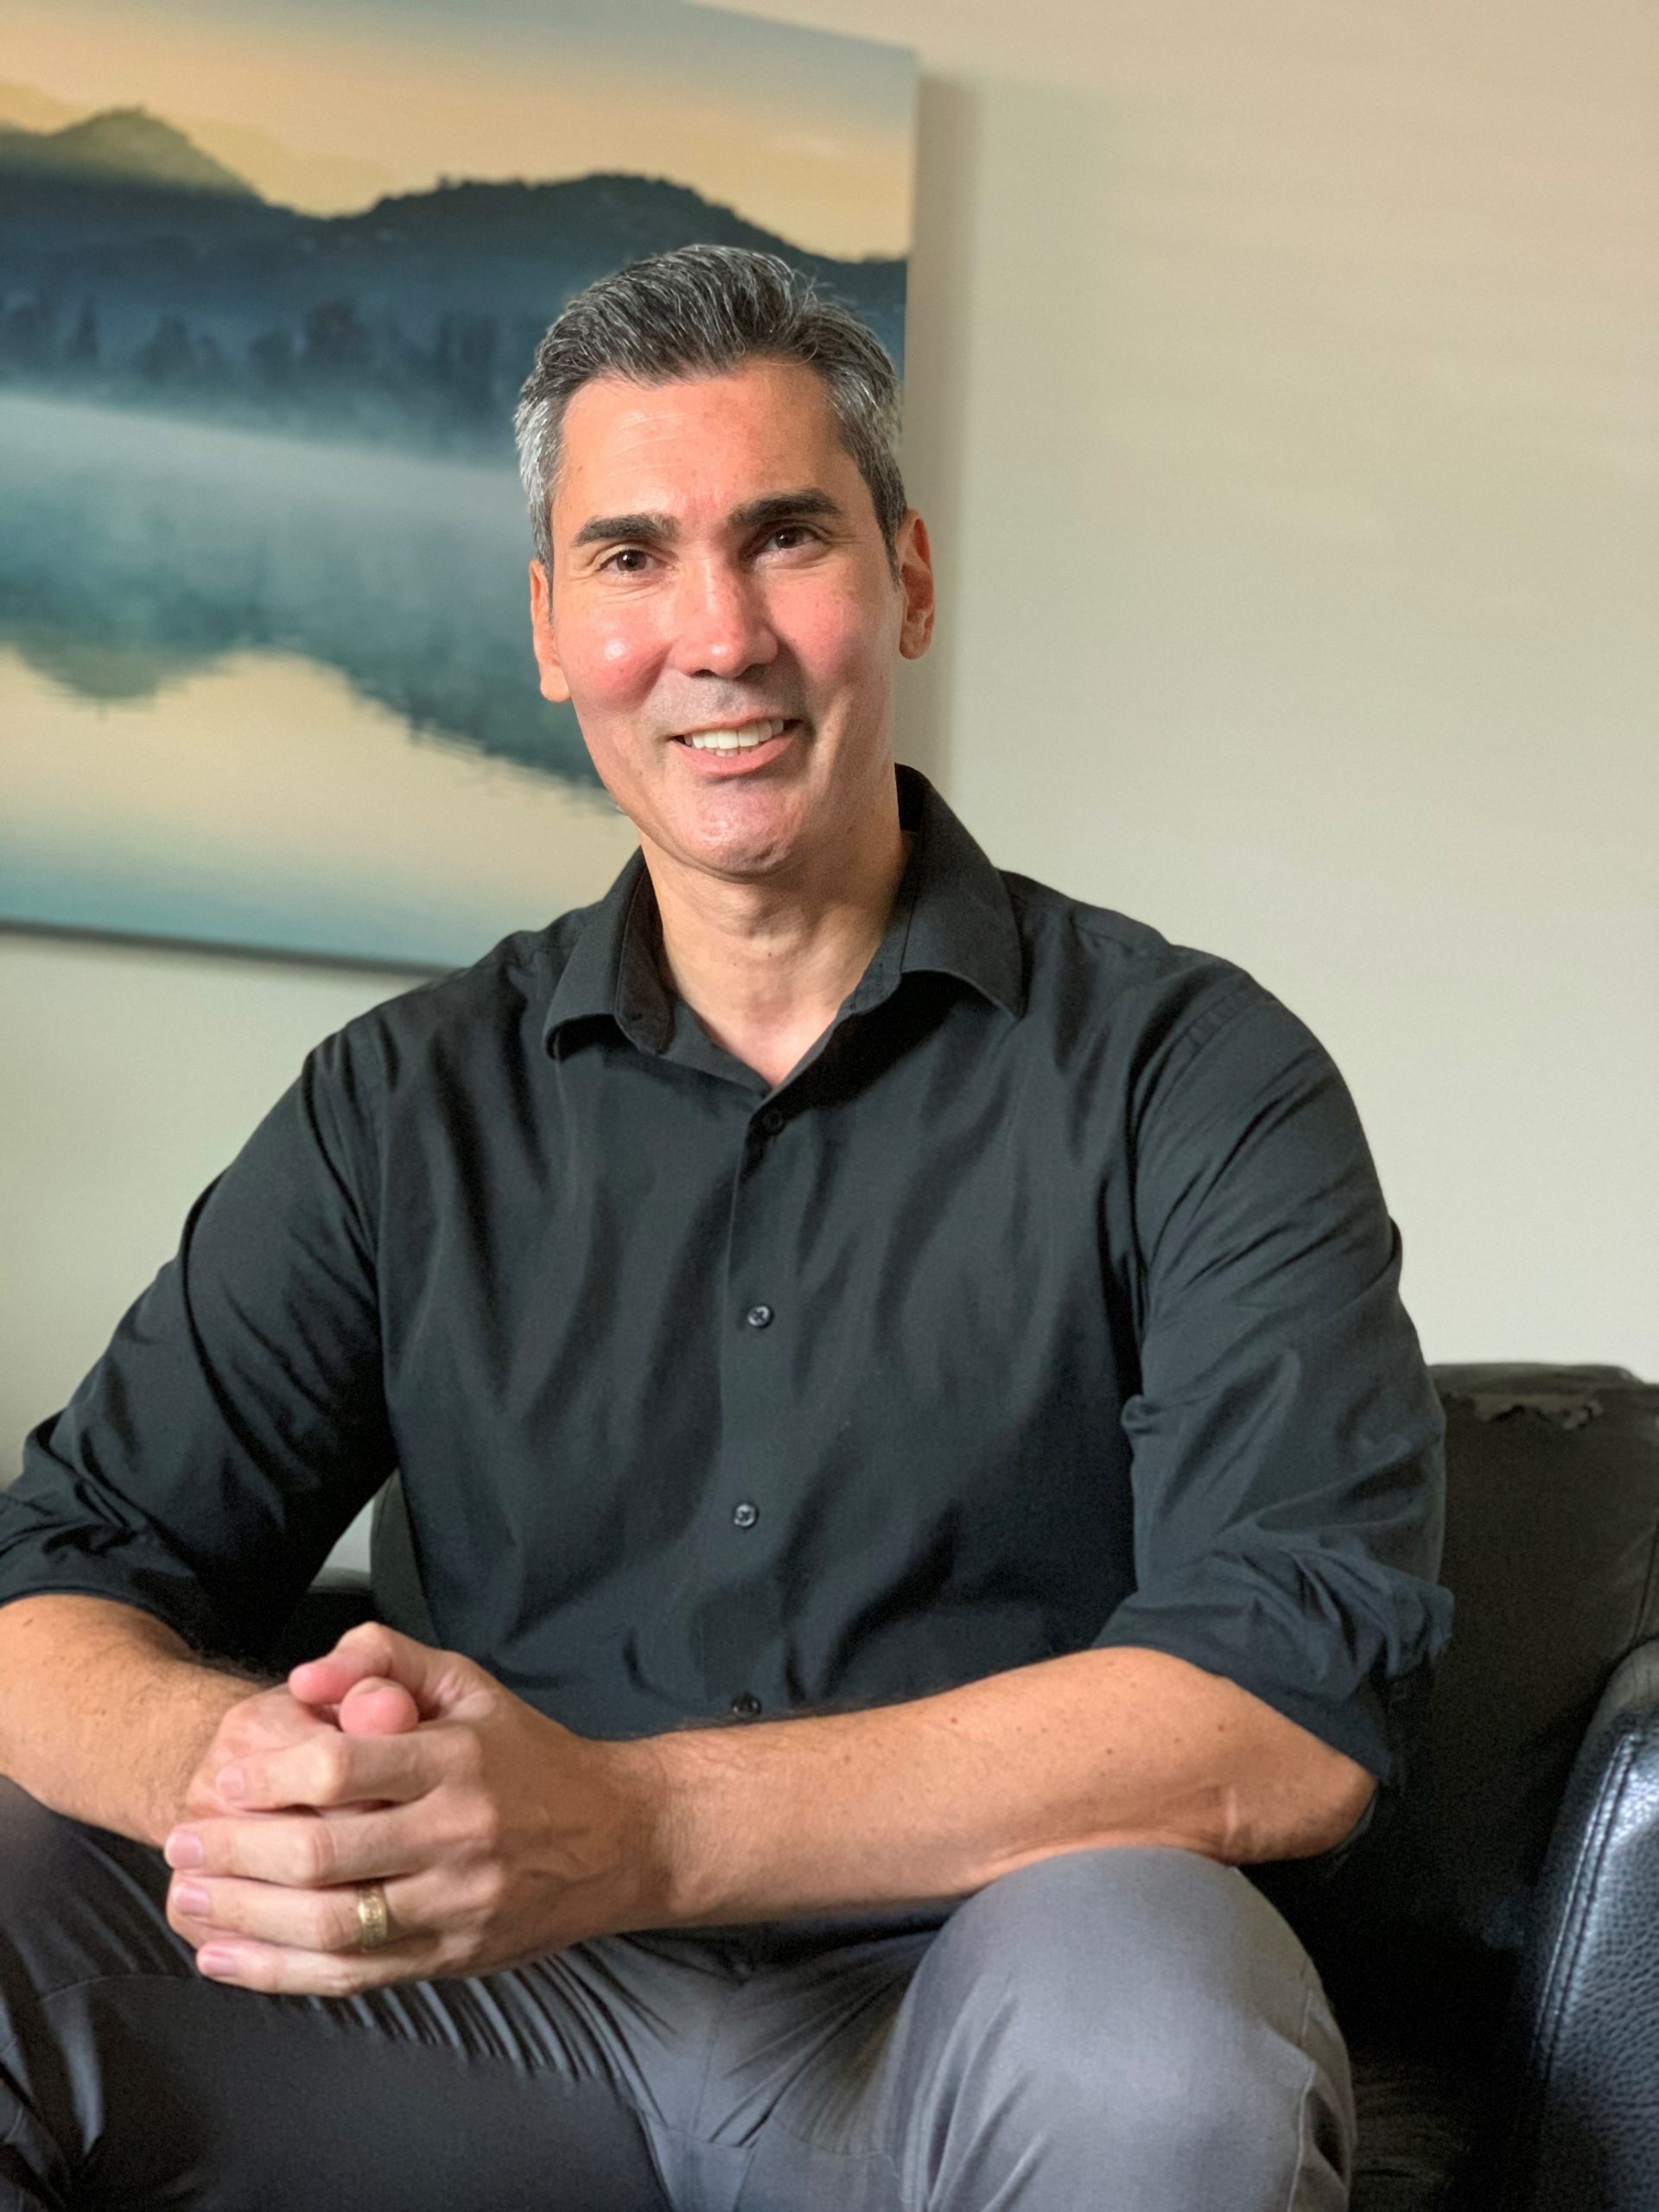 David Plazas, USA Today Network Tennessee